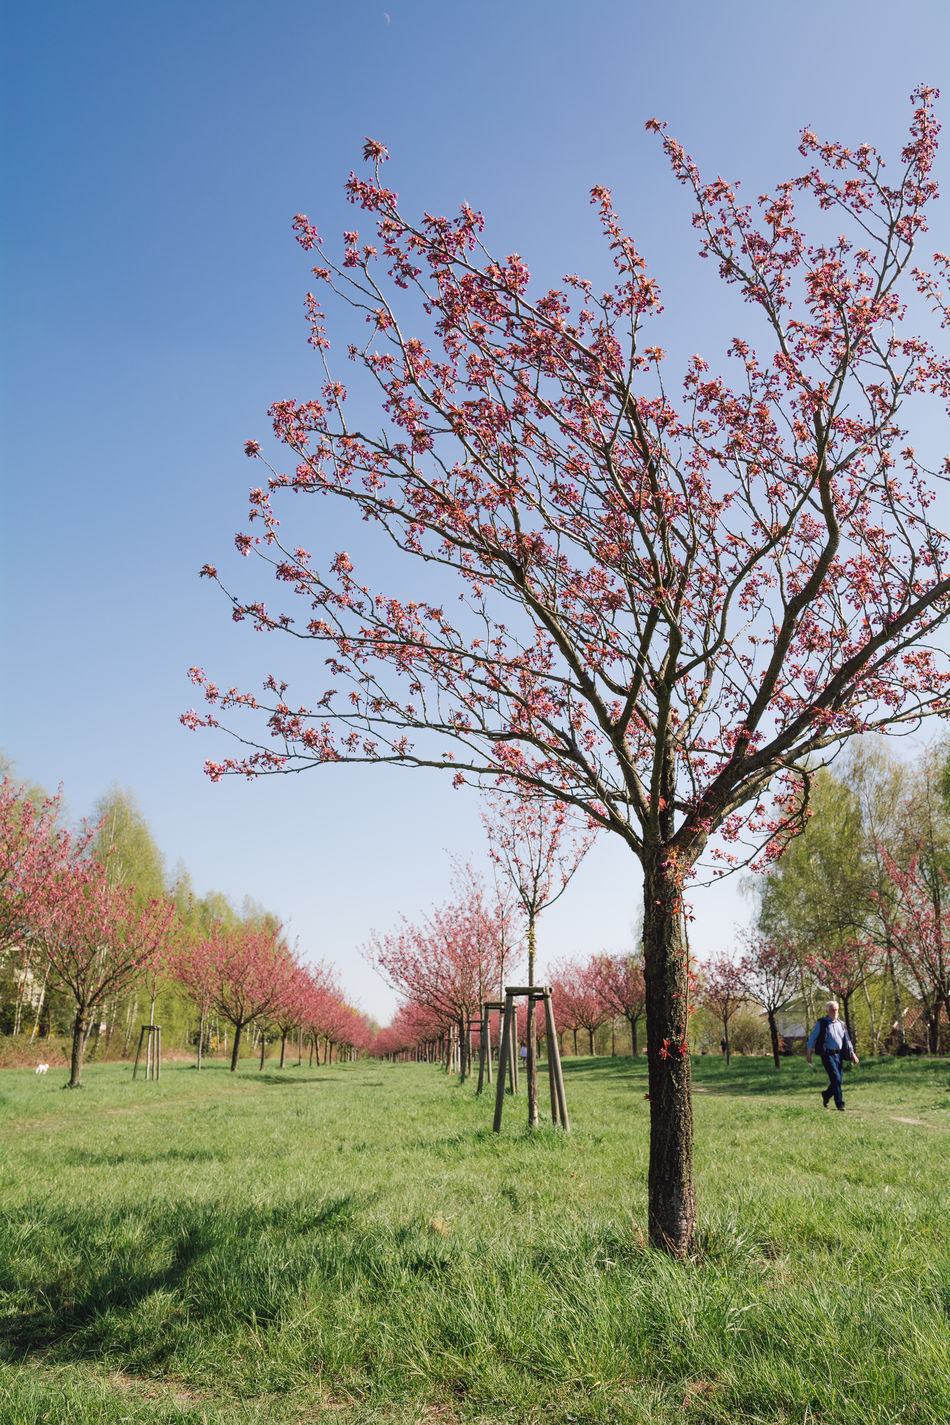 japanese cherry blossoms Beauty In Nature Berlin Branch Clear Sky Day Field Full Length Grass Grassland Growth Japanese Cherry Blossoms Landscape Men Nature Outdoors Real People Scenics Season  Spring Spring 2017 Springtime Tranquil Scene Tranquility Tree Tree Trunk